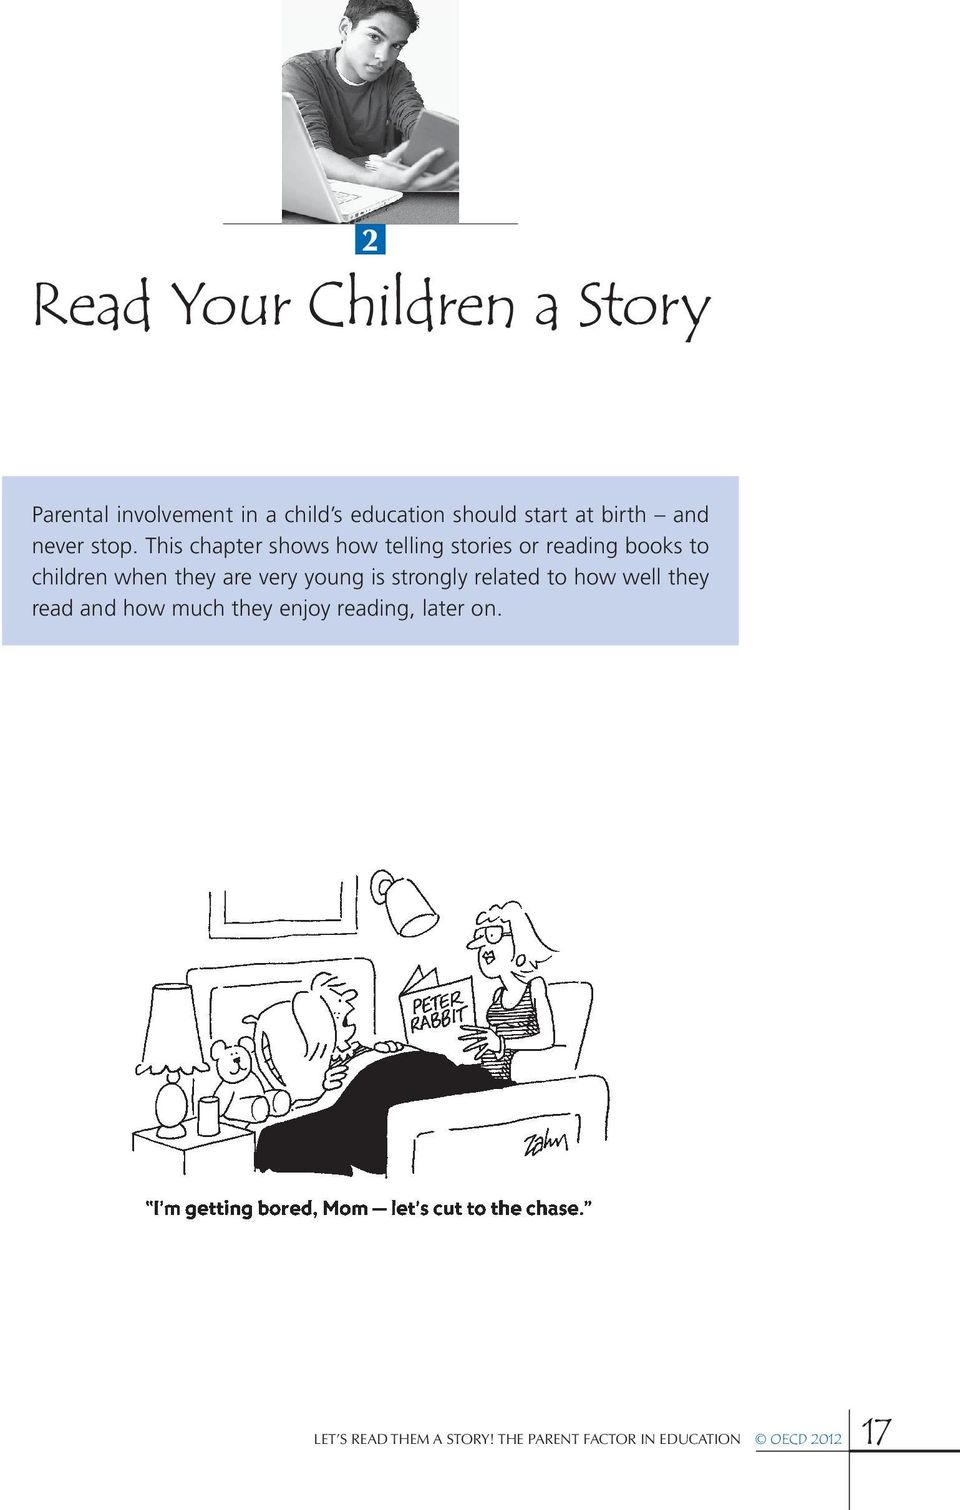 This chapter shows how telling stories or reading books to children when they are very